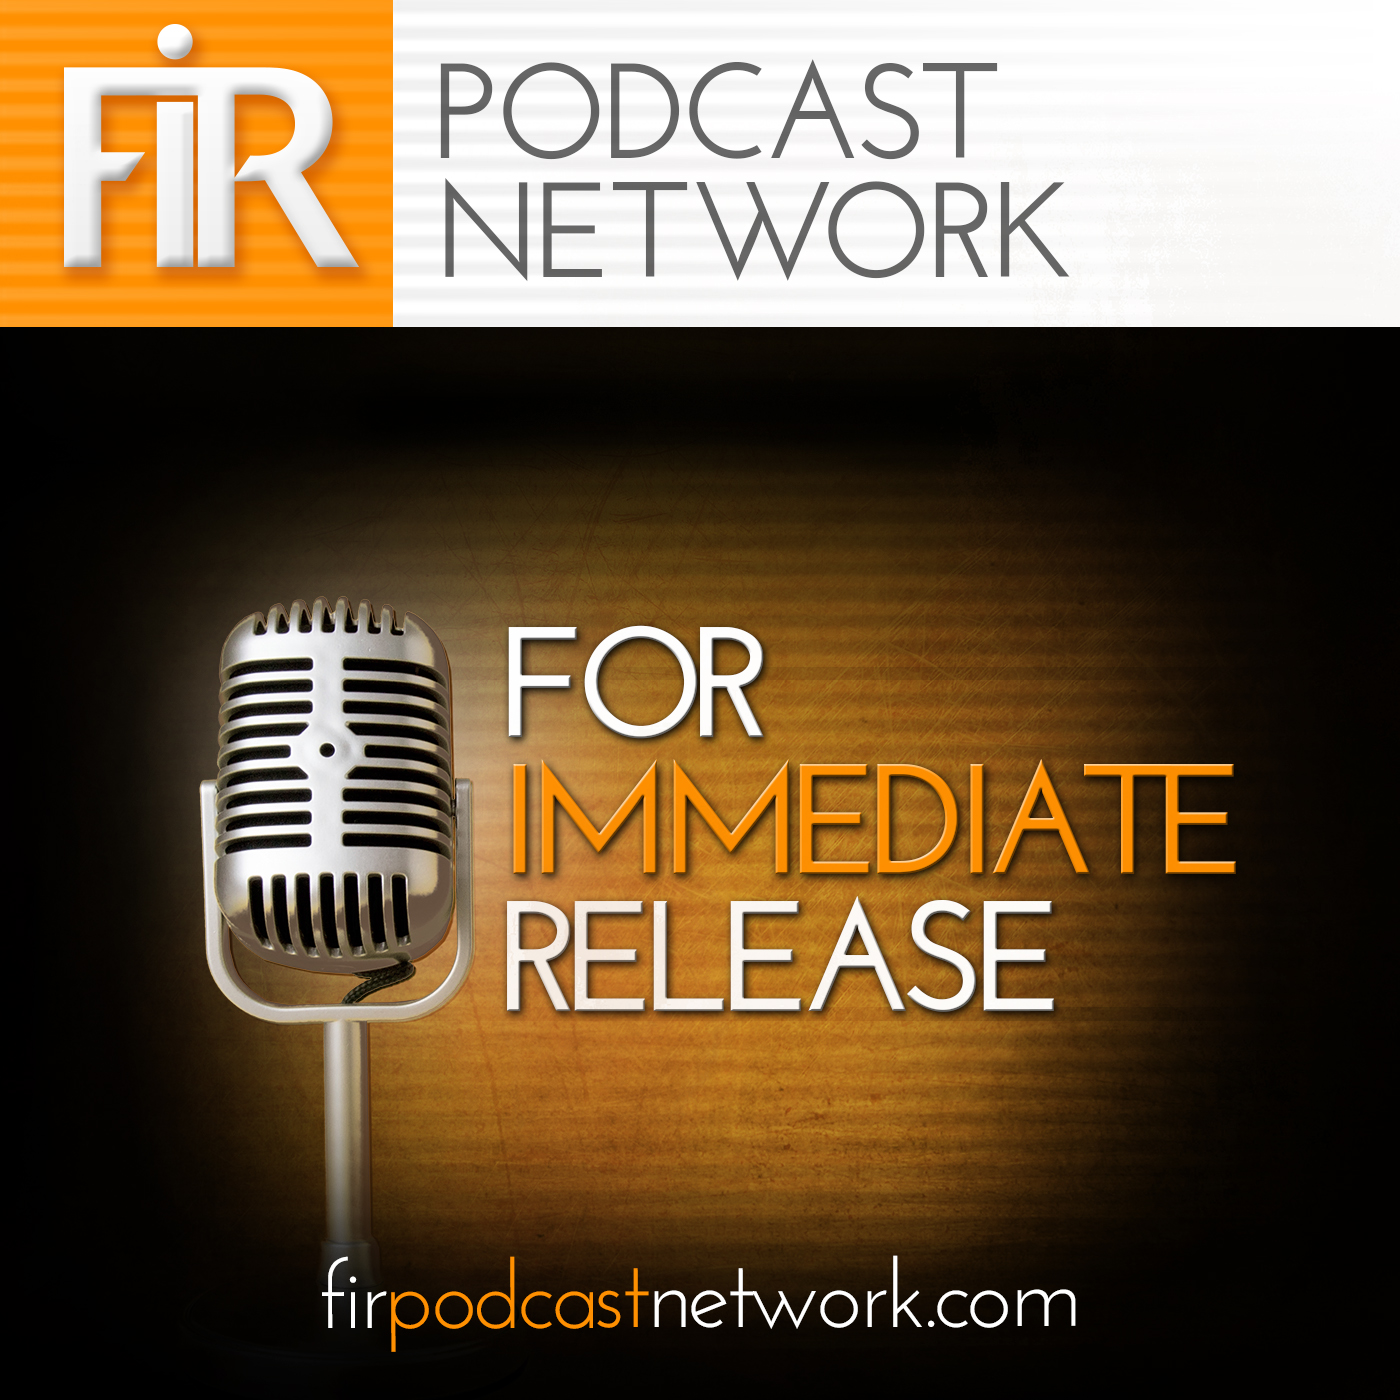 For Immediate Release Podcast show art